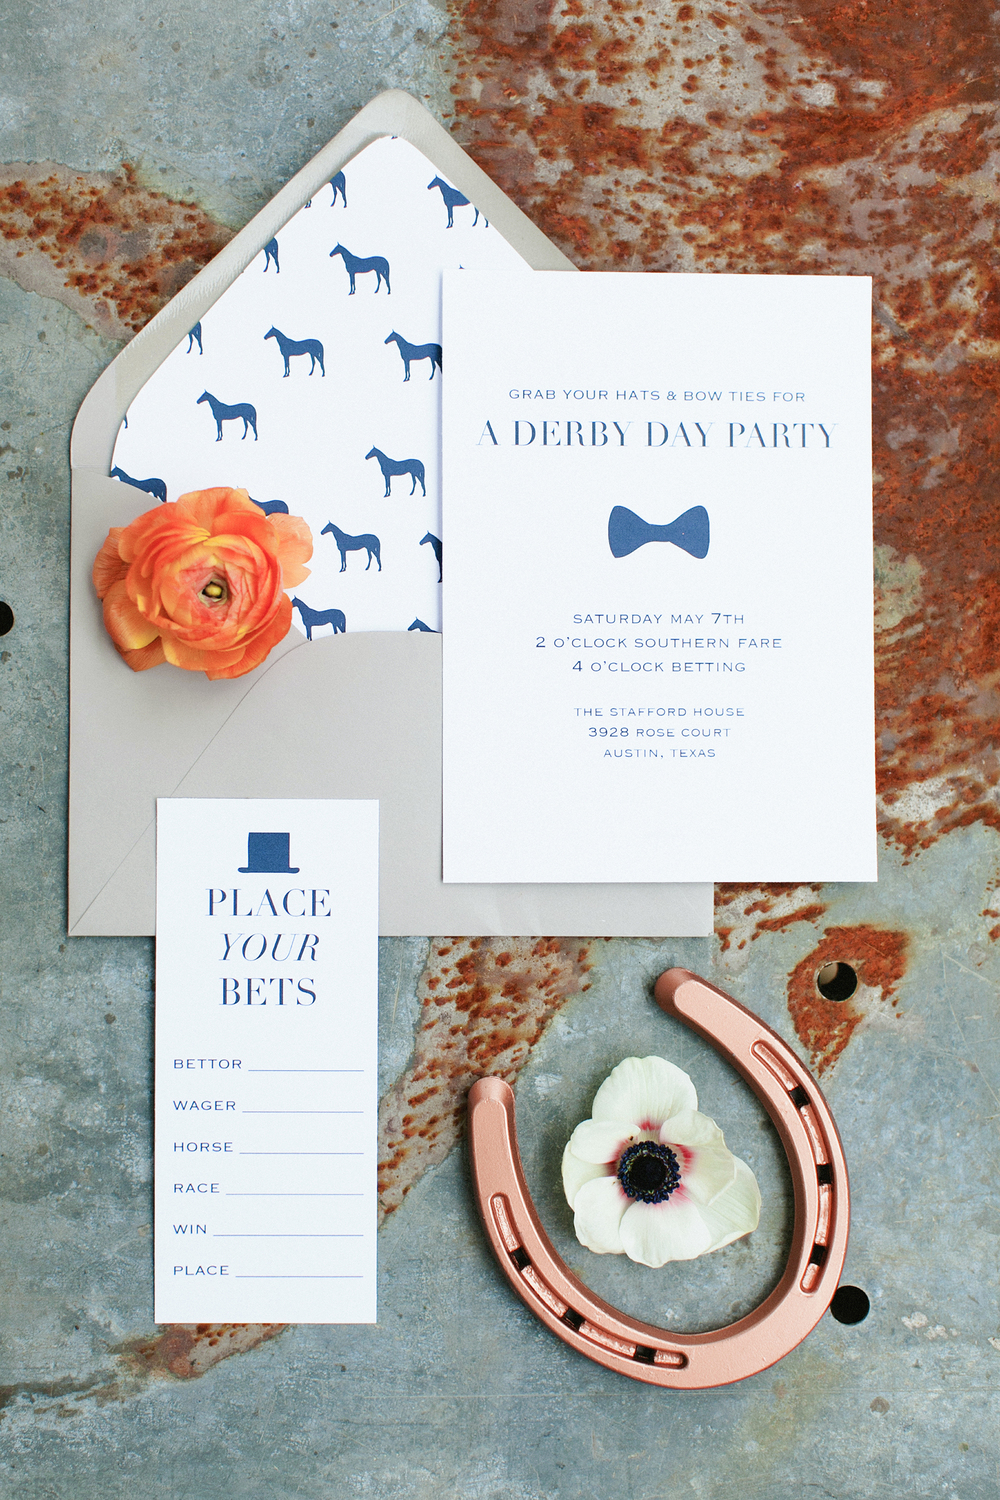 Cute free download for Derby party from boxwoodavenue.com [milou + olin photography]